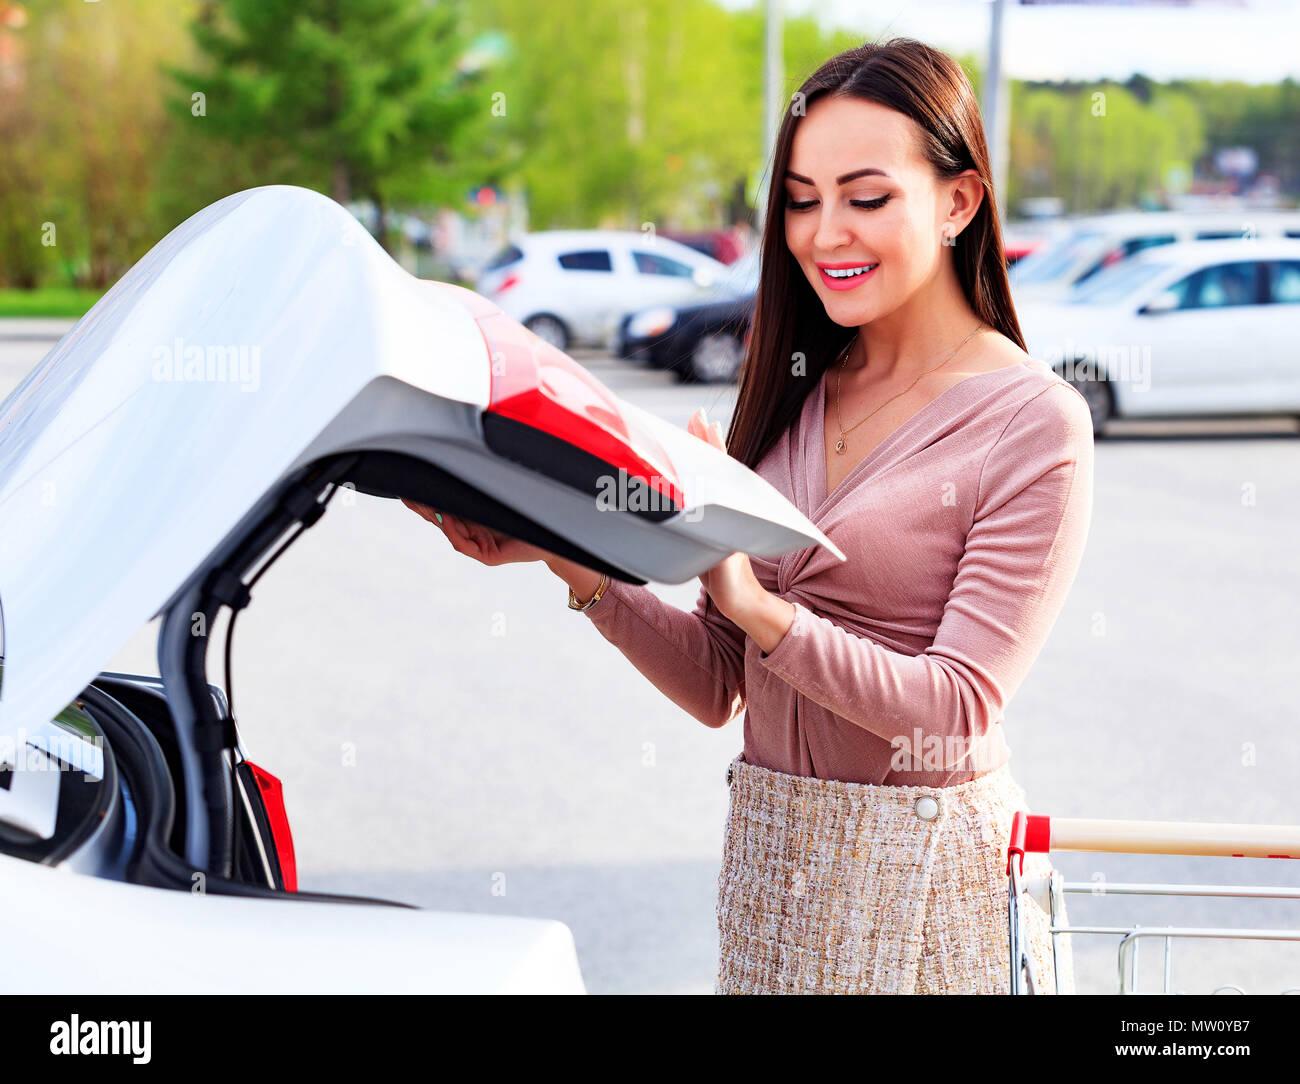 Young pretty woman is opening the trunk of her car - Stock Image